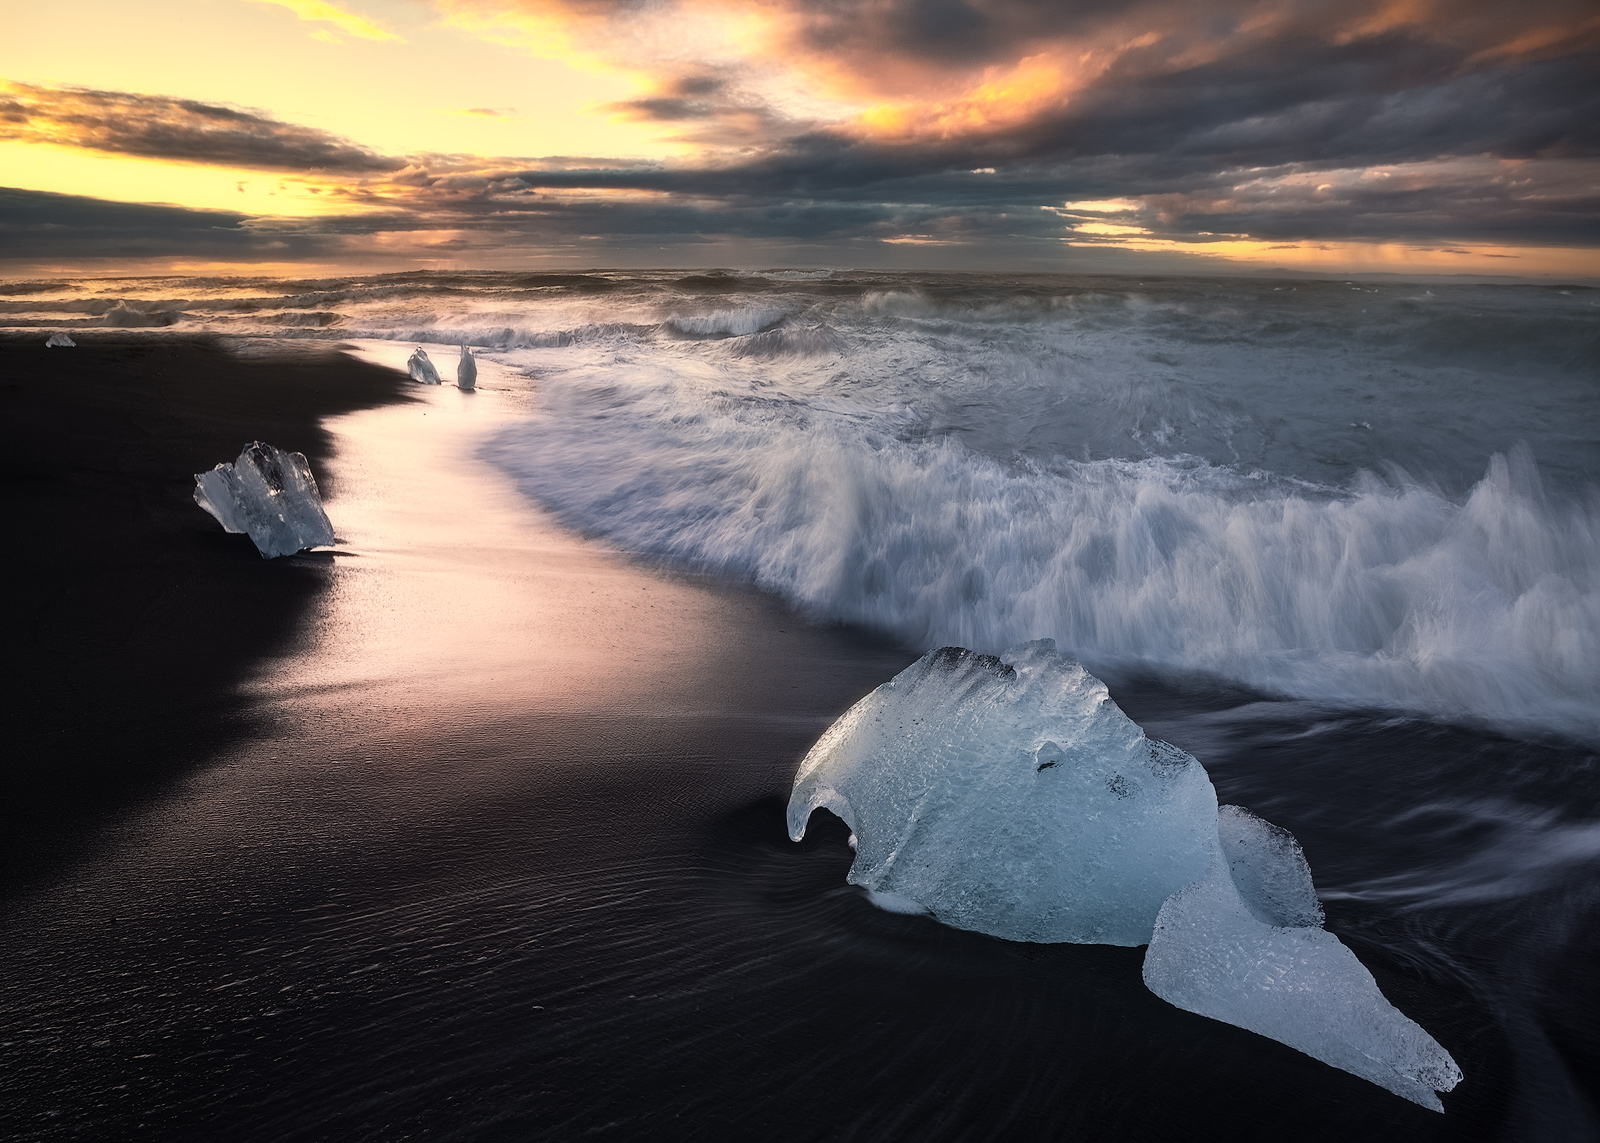 beach,black,breidamerkursandur,europe,ice,iceberg,iceland,long exposure,morning,ocean,sand,southern,sunrise,water body, photo